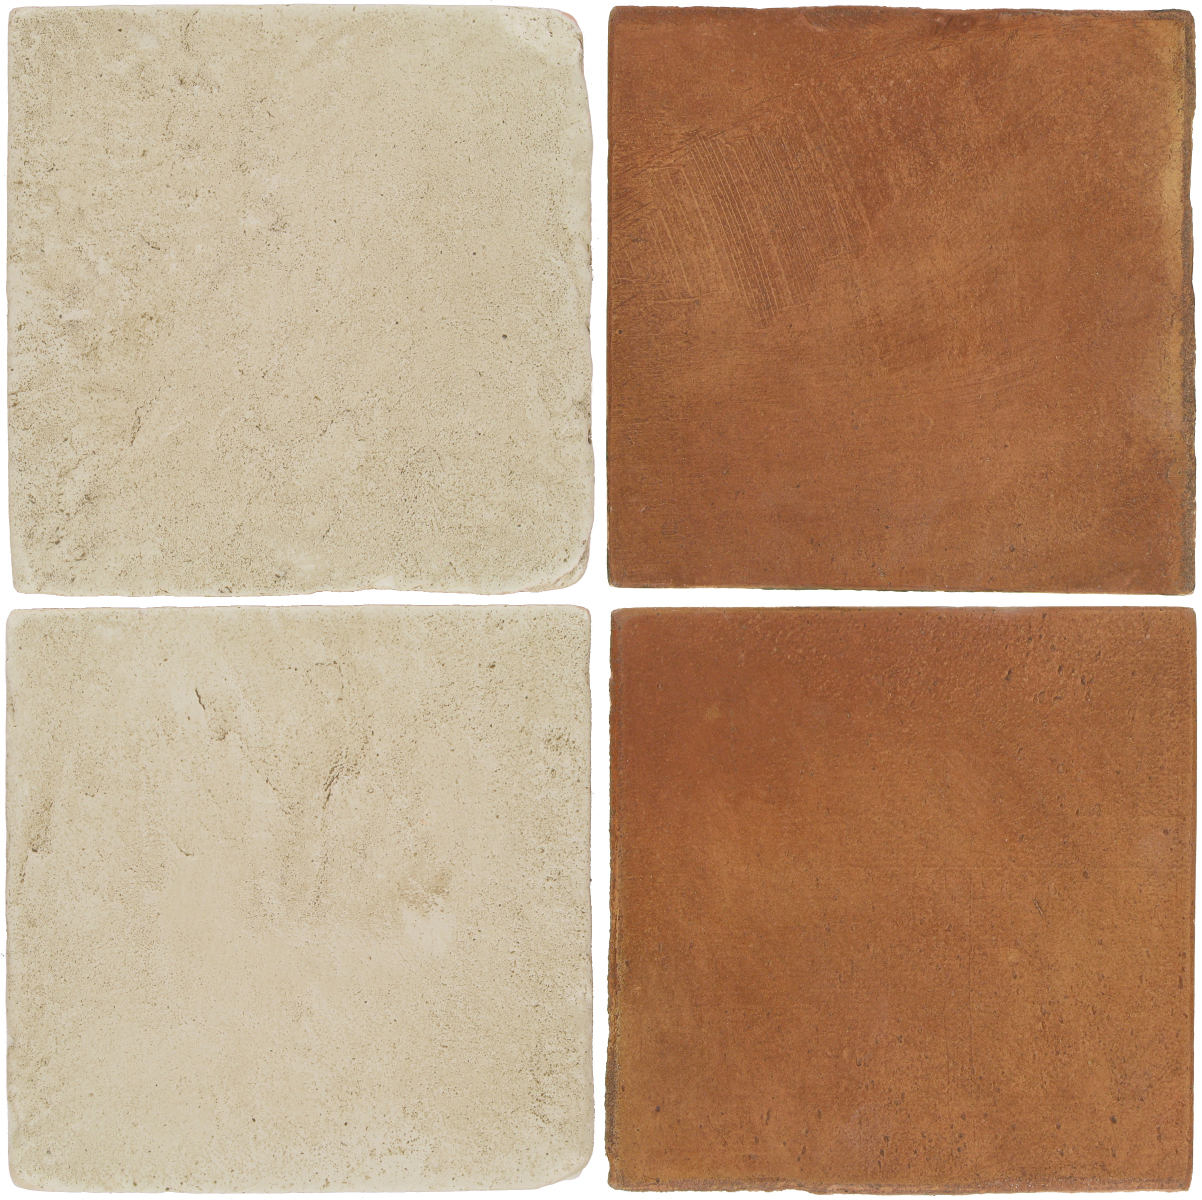 Pedralbes Antique Terracotta  2 Color Combinations  VTG-PGLW Glacier White + OHS-PSTR Traditional